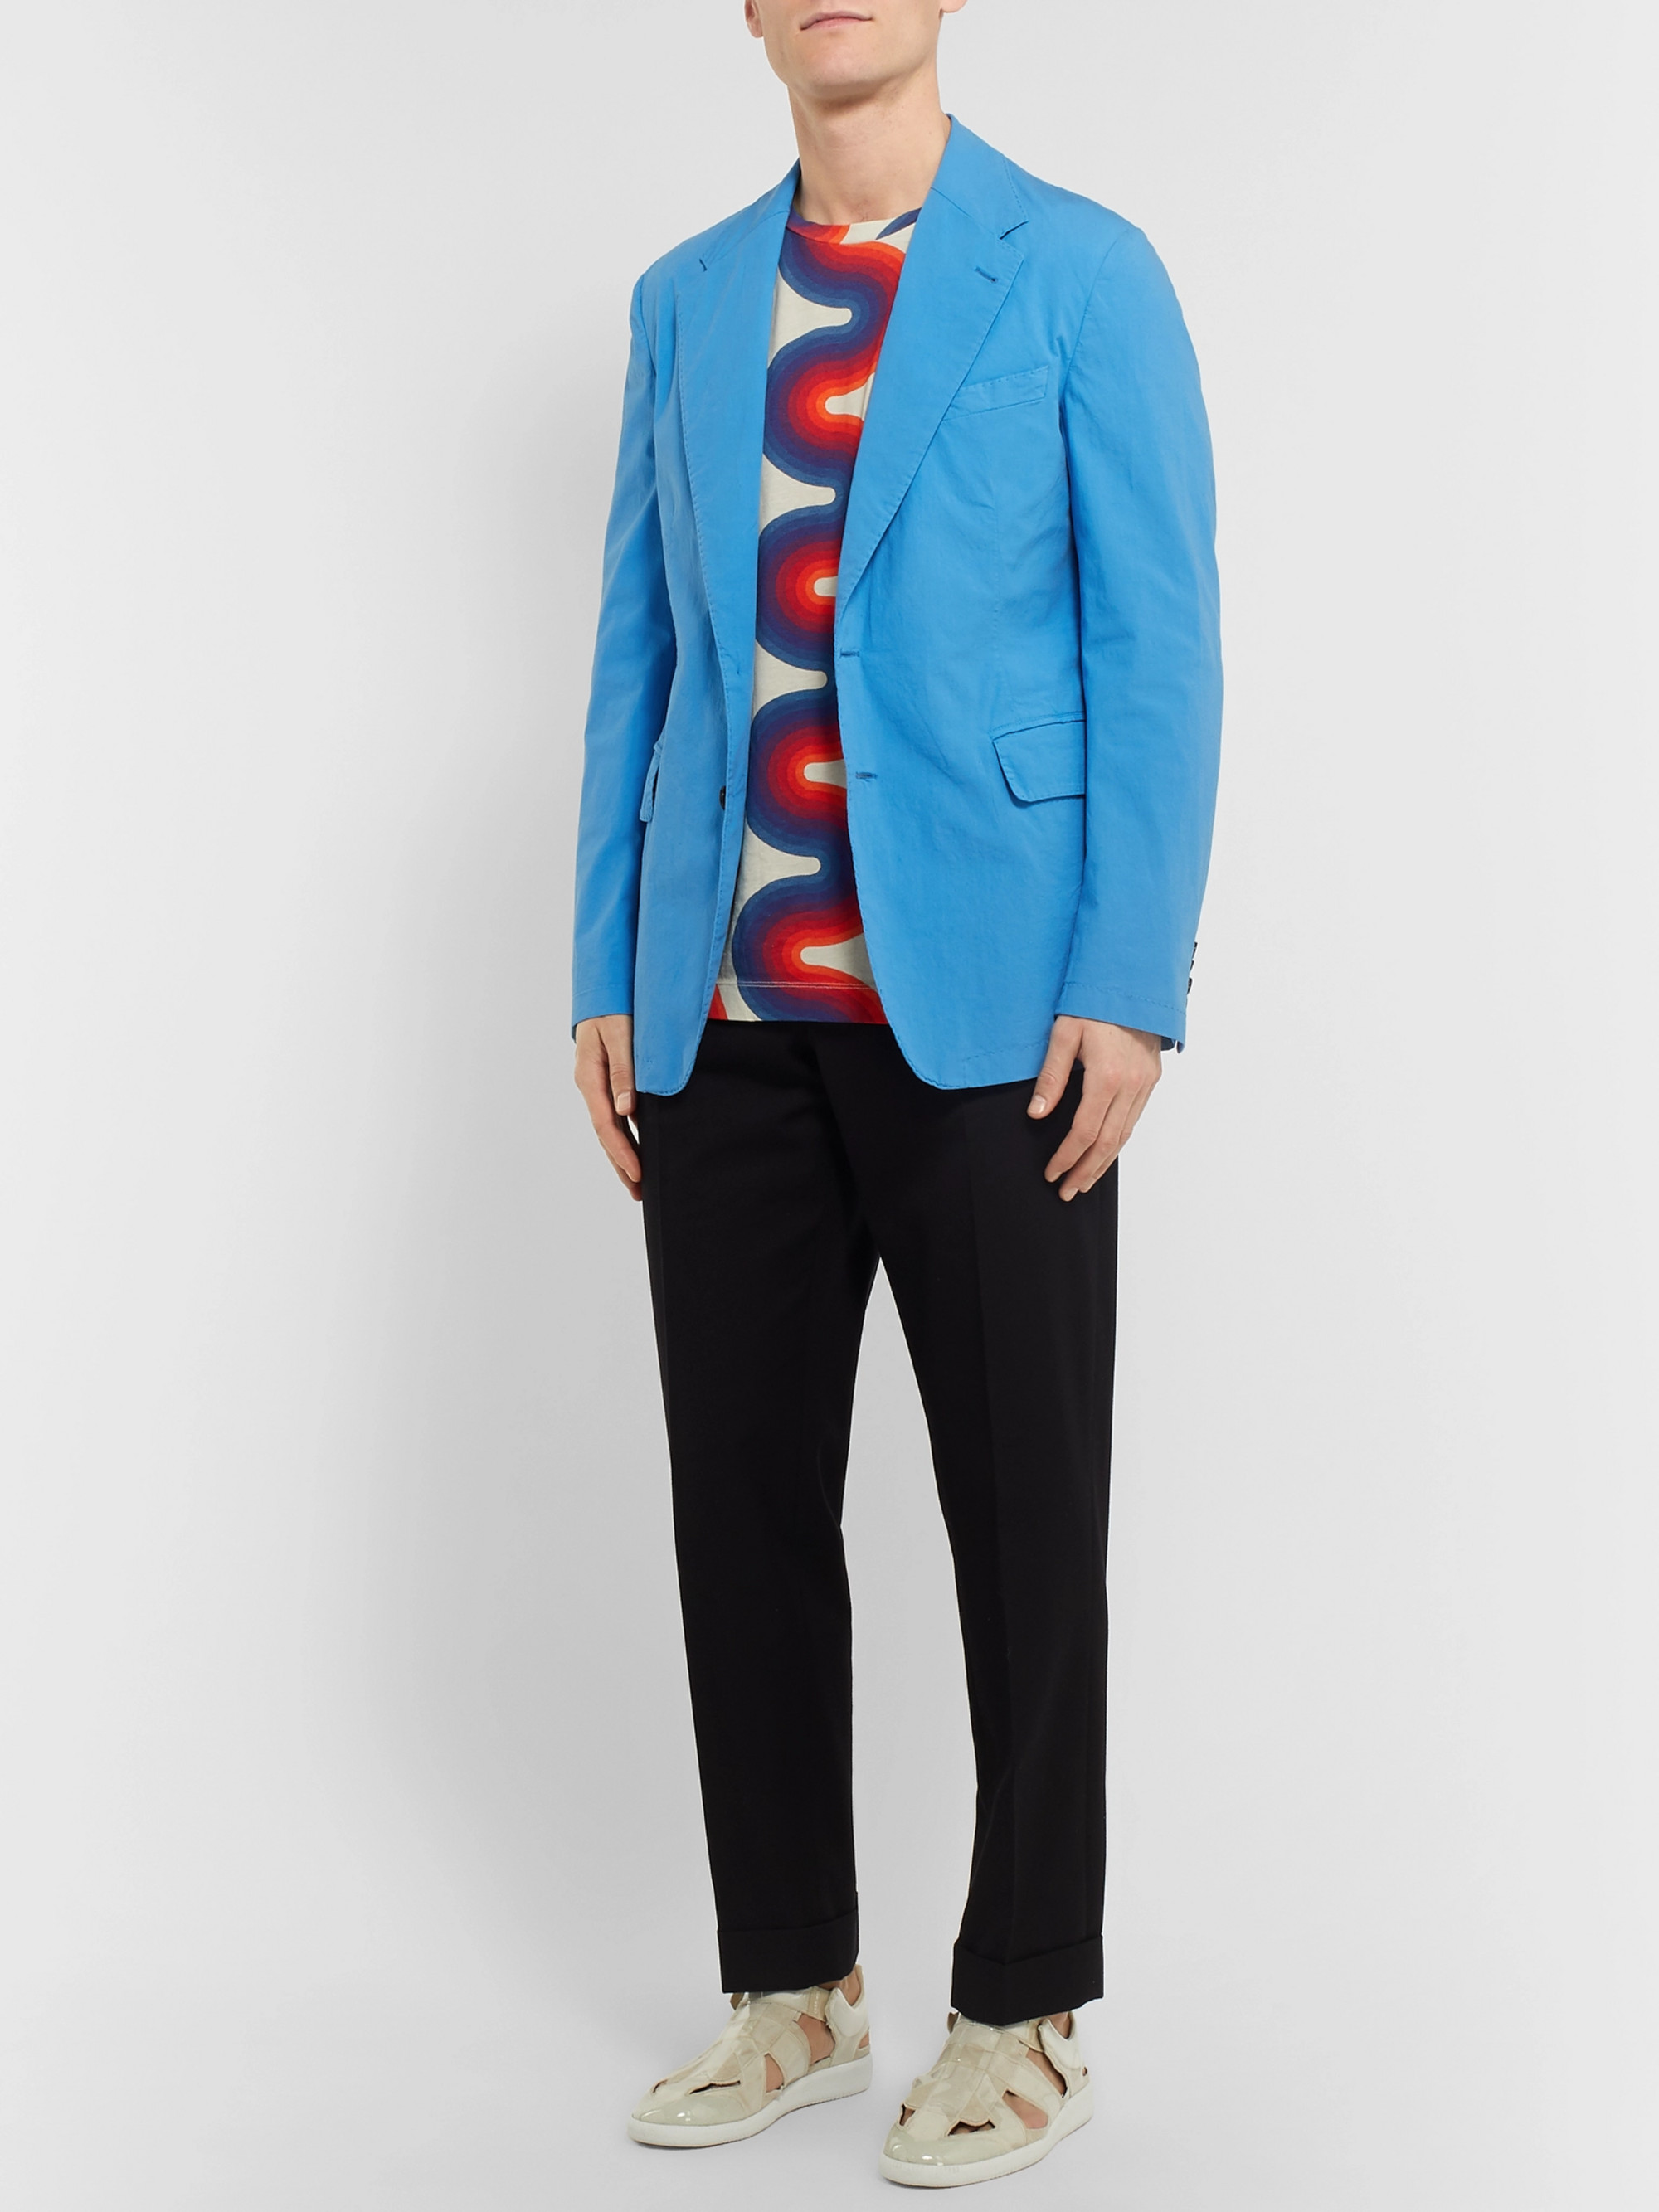 Dries Van Noten Bright-Blue Slim-Fit Unstructured Cotton-Blend Blazer